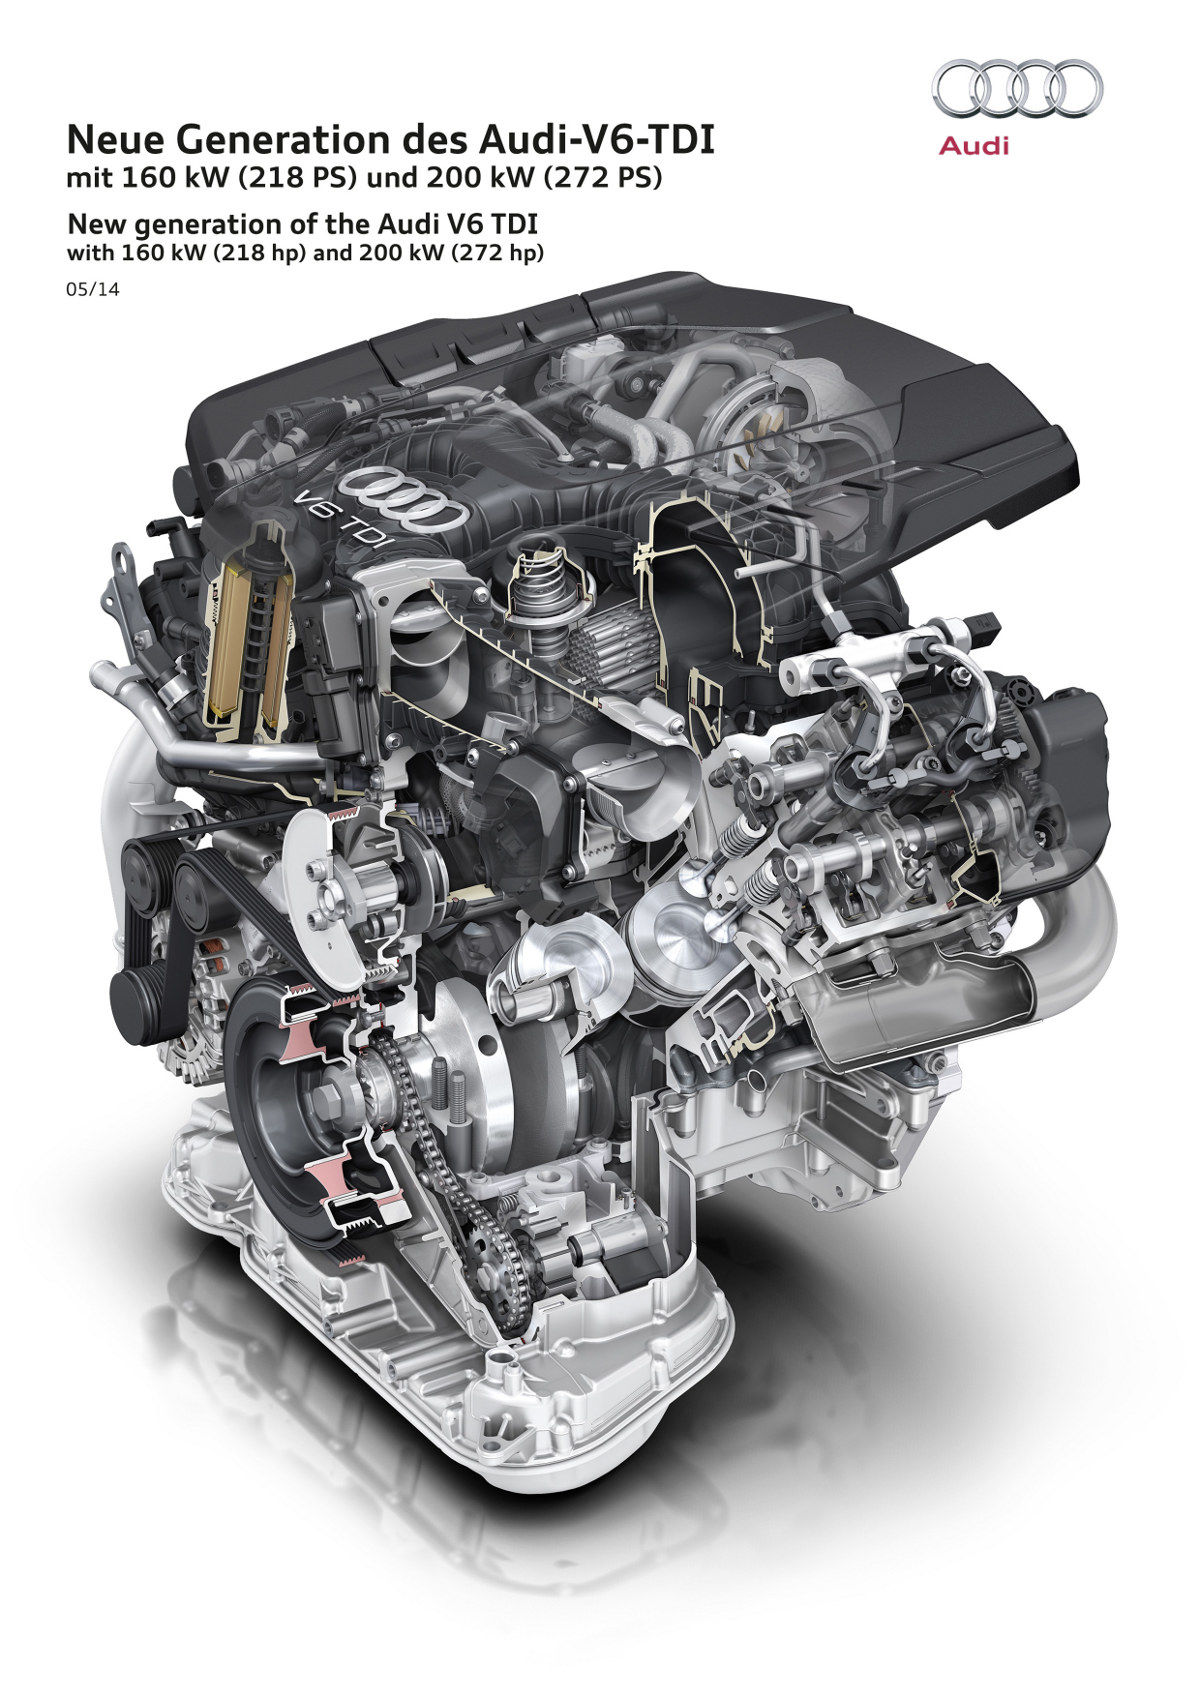 All About The Latest Audi 3.0 TDI Engine